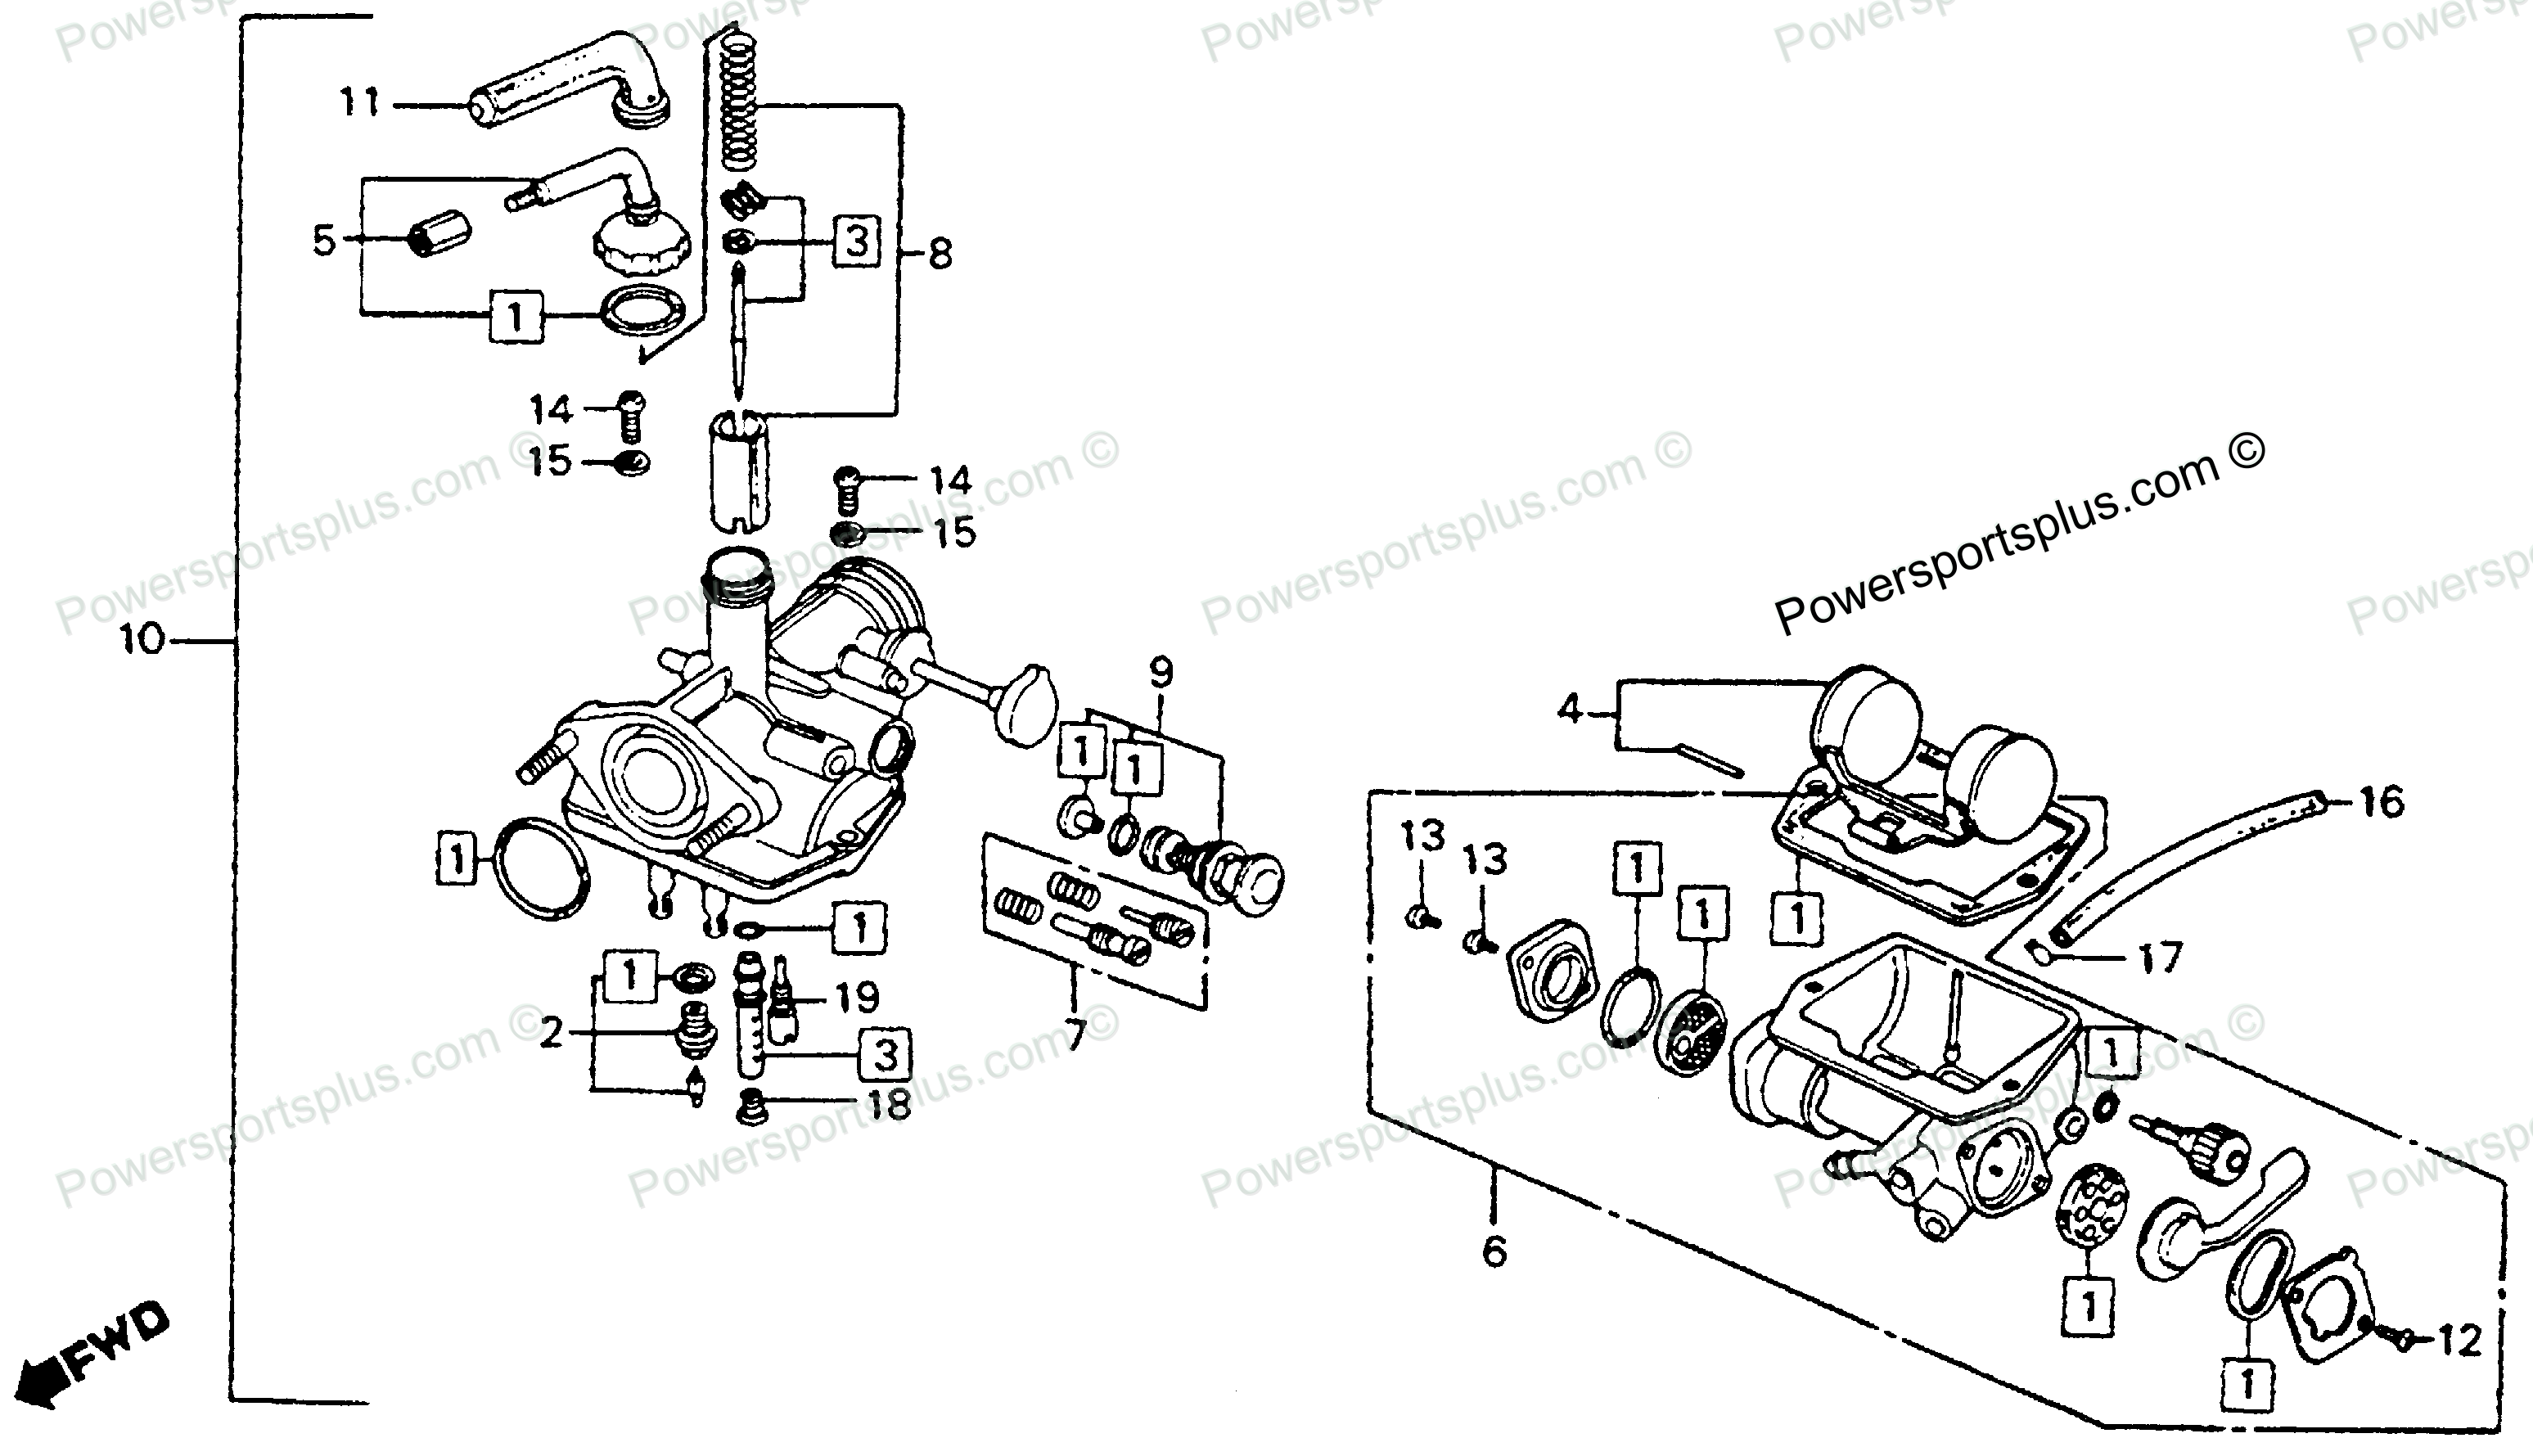 0efb18283ae24d7a2627632be070cf5c diagram of honda motorcycle parts 1976 ct90 a carburetor k6 77 honda motorcycles parts diagram at bakdesigns.co